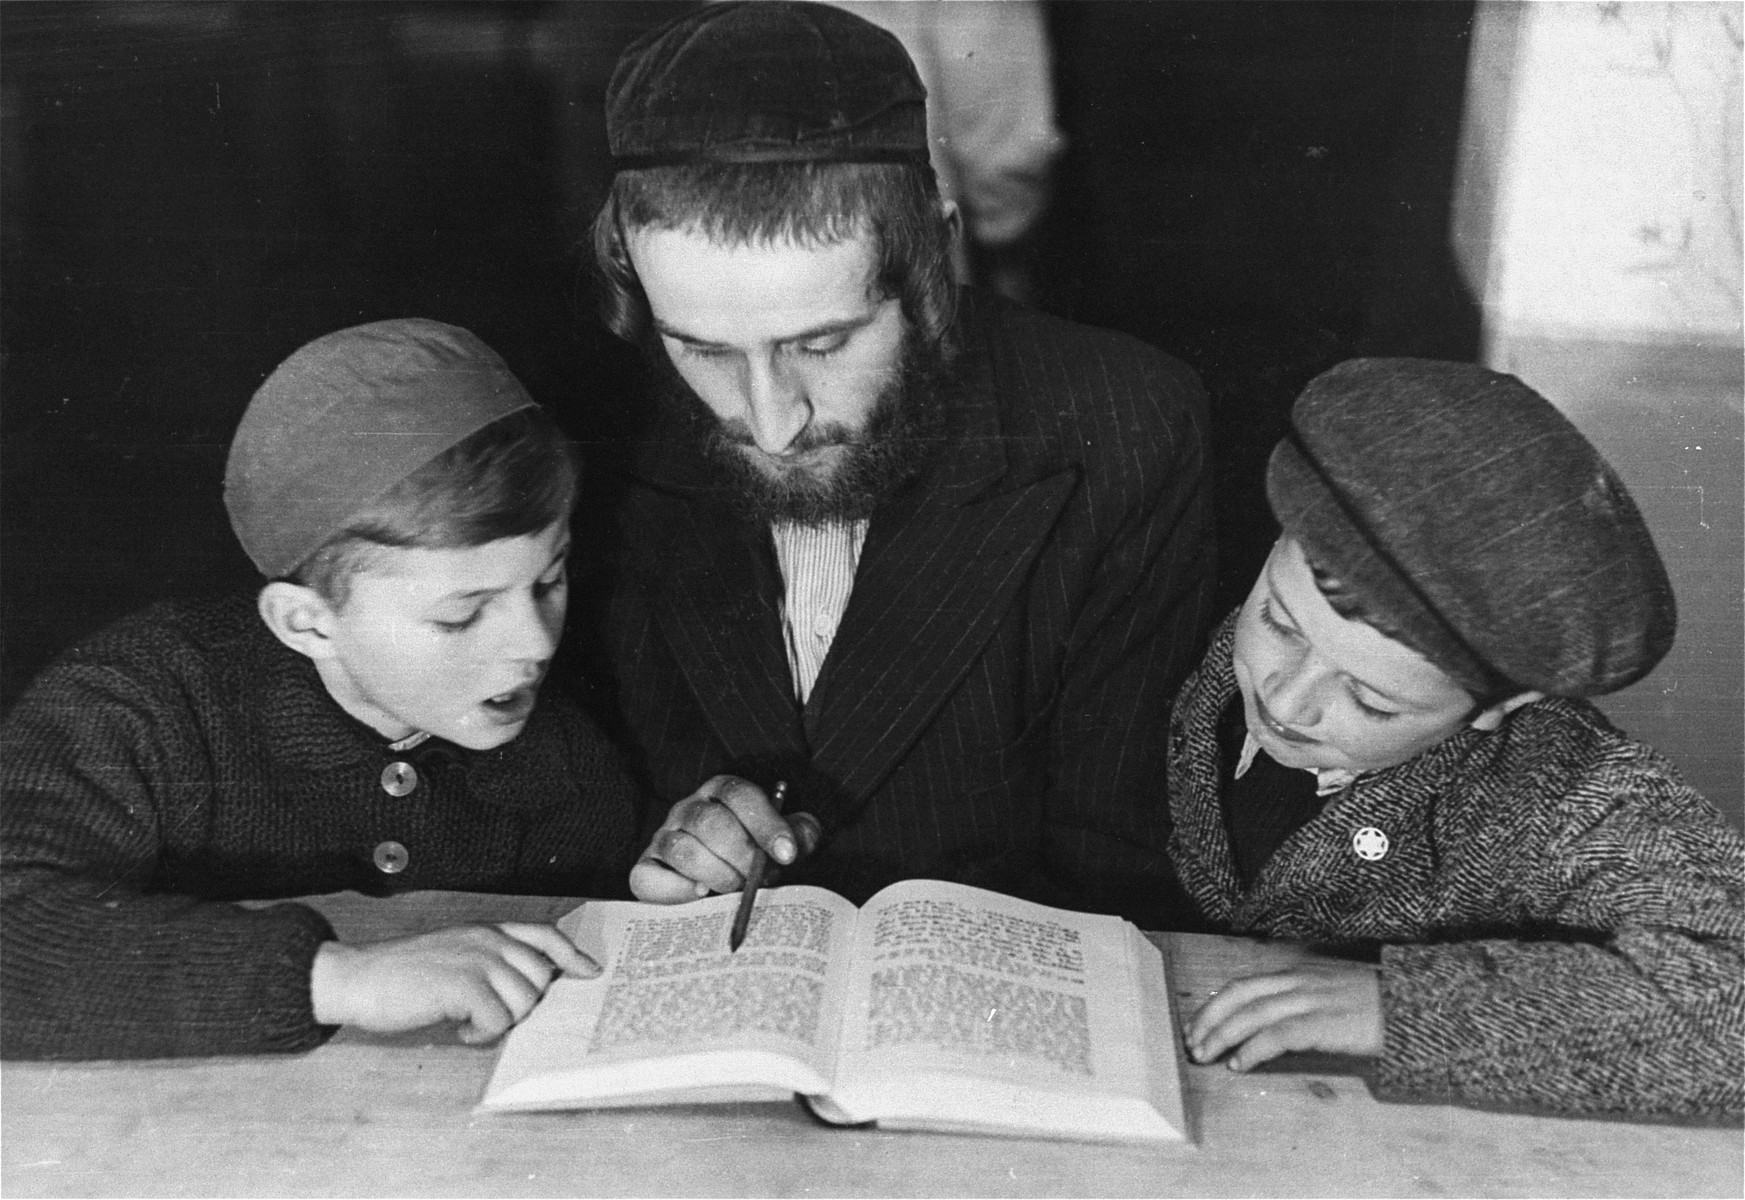 A teacher reviews a religious text with two boys in the Landsberg displaced persons' camp.